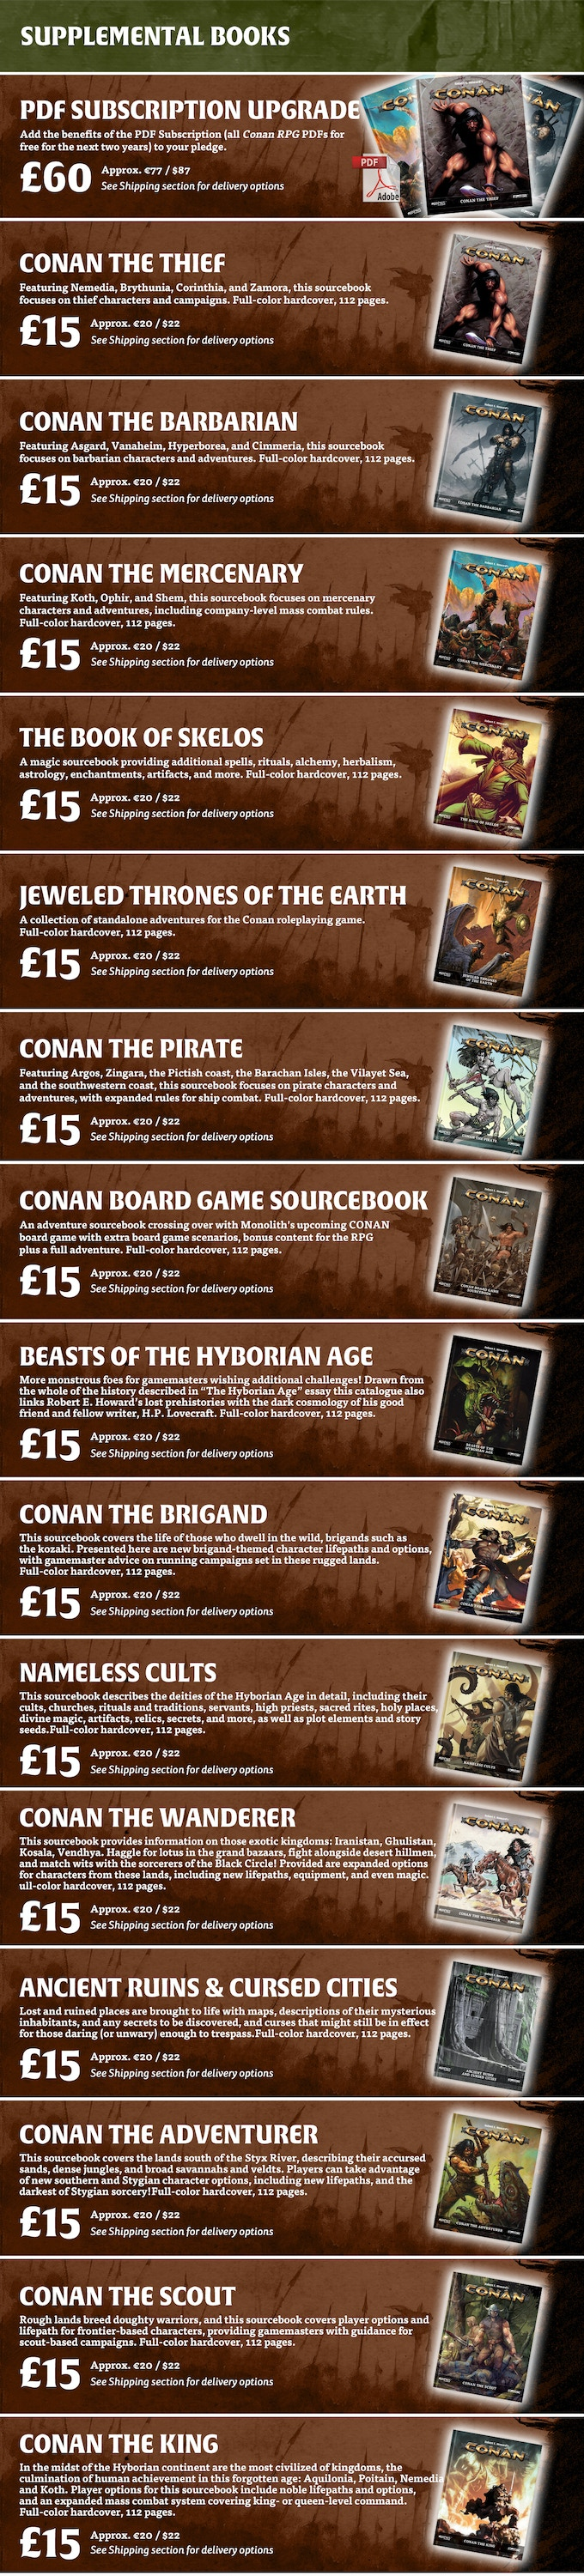 Participate :: Robert E  Howard's Conan Roleplaying Game by Modiphius